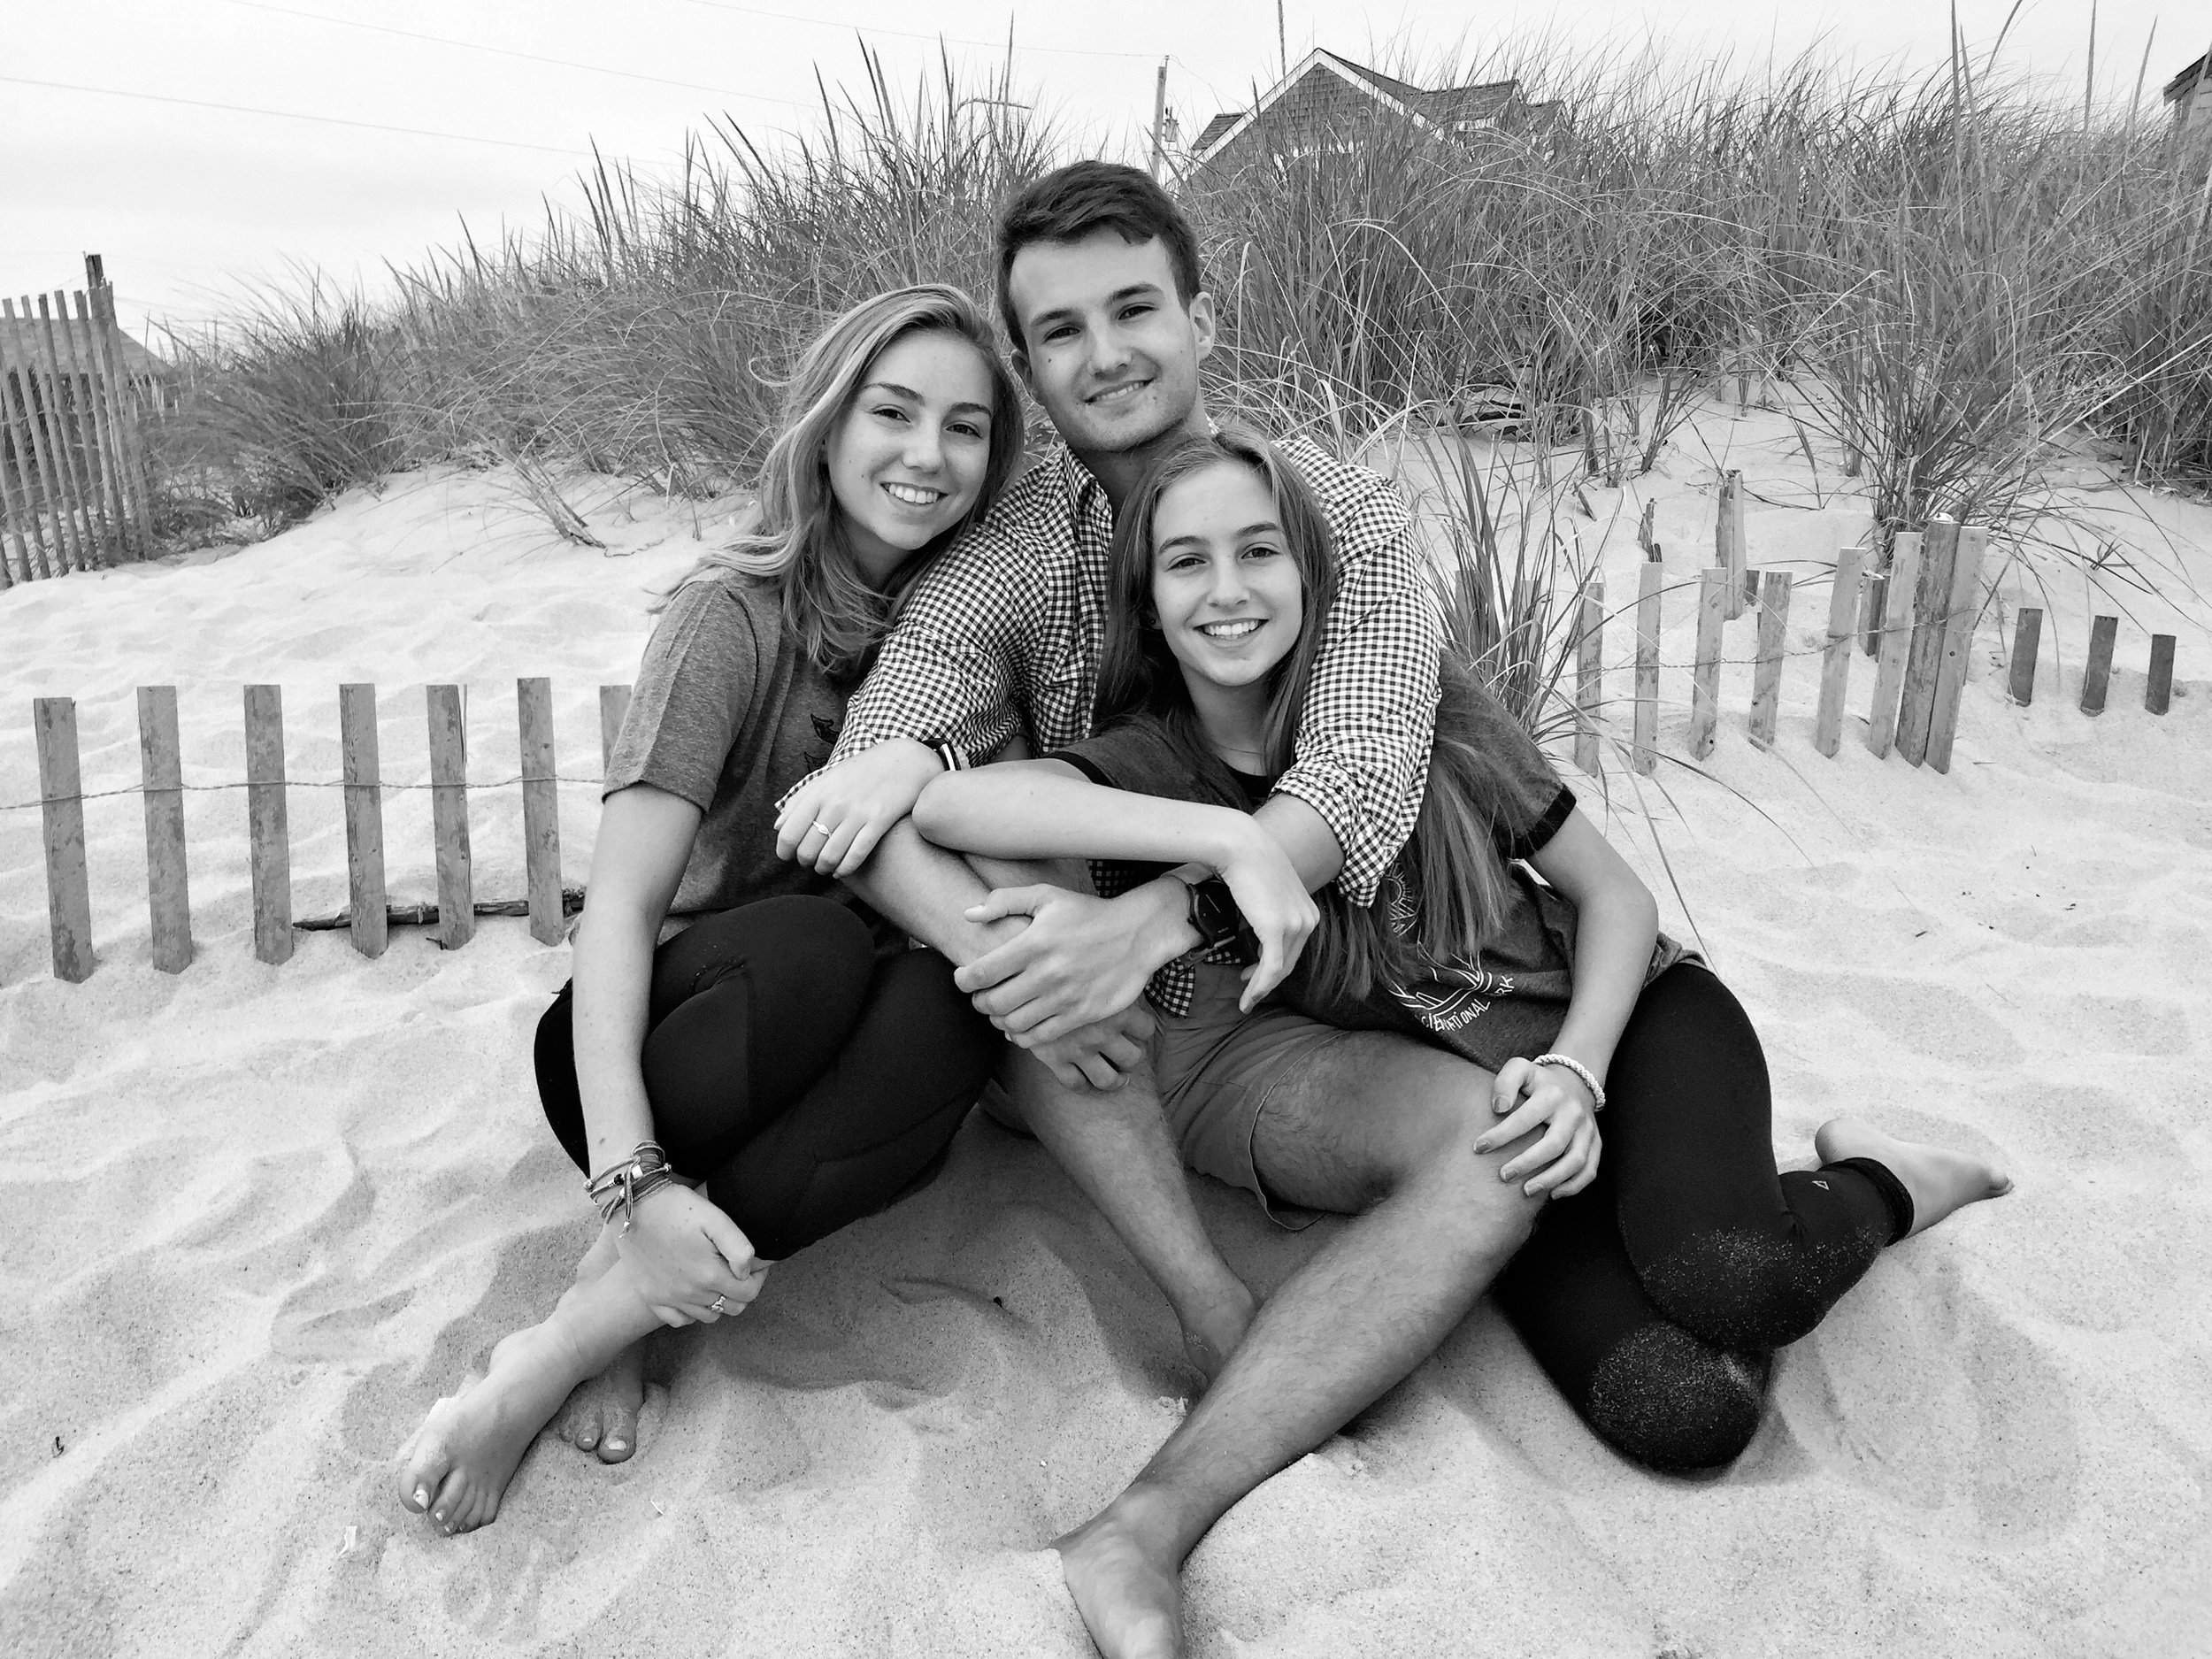 Liv-love, Jamie and India | Madaket, Nantucket 2016